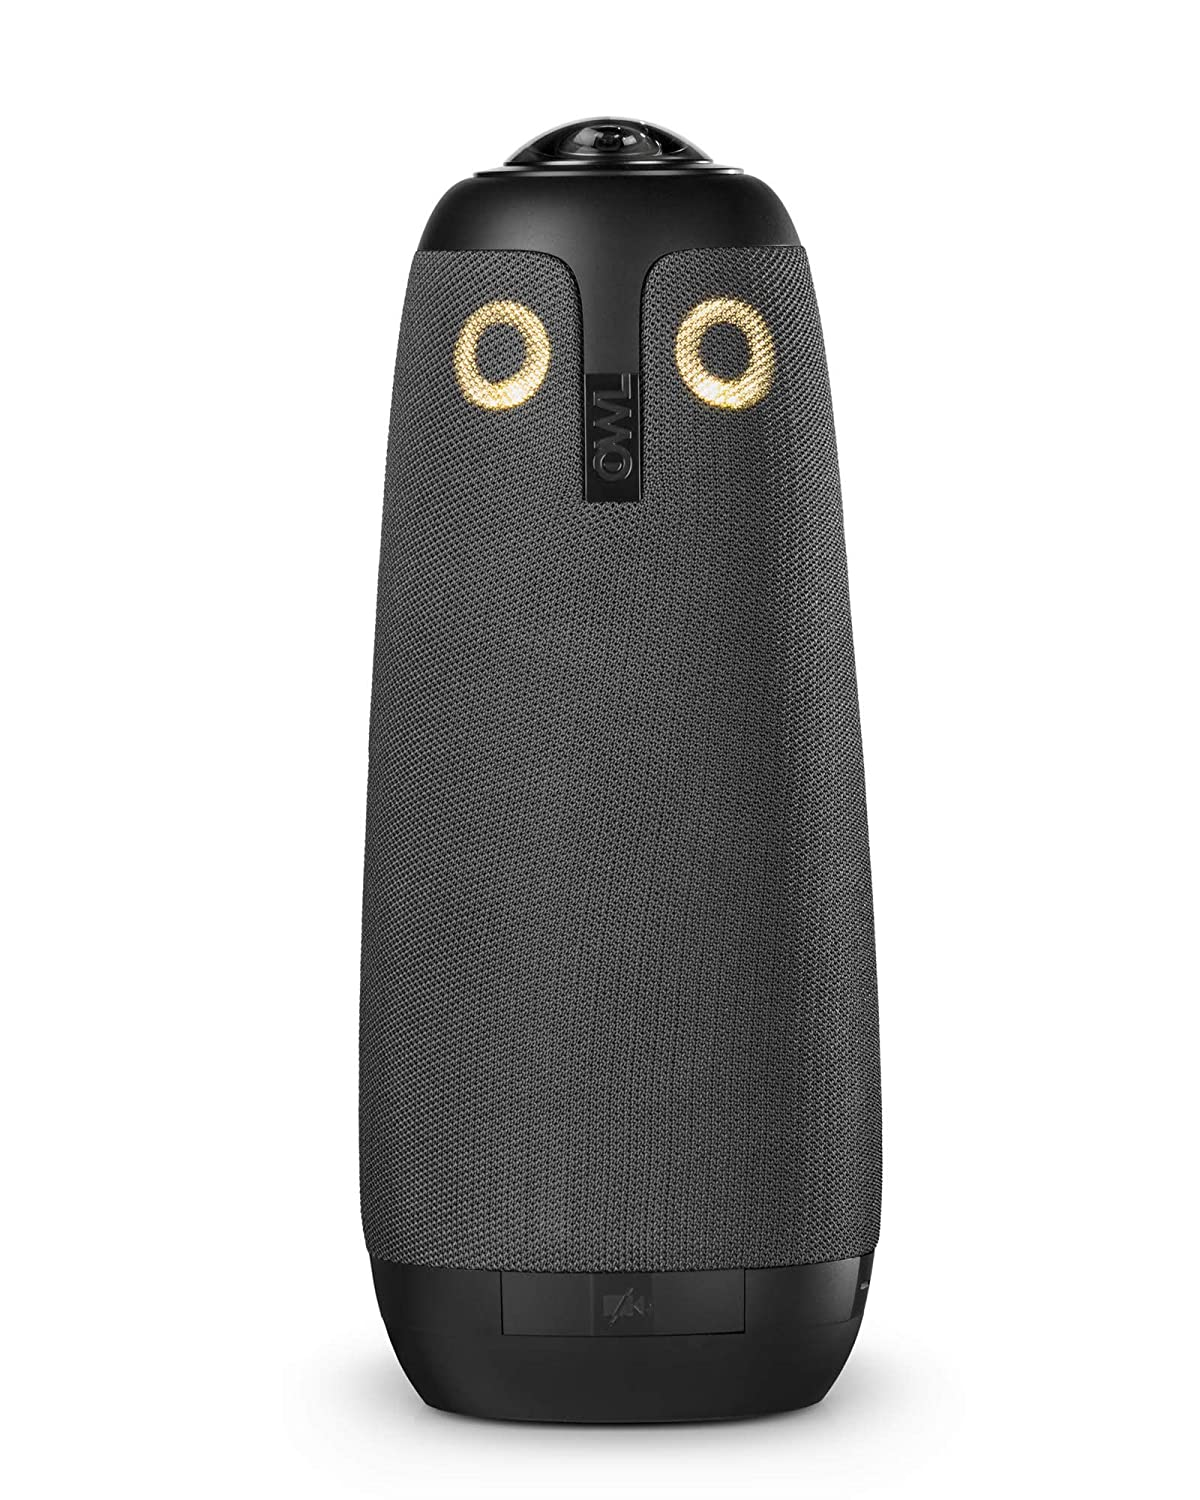 Meeting Owl 360 Degree Video Conference Camera with Automatic Speaker Focus Owl Labs MTW100